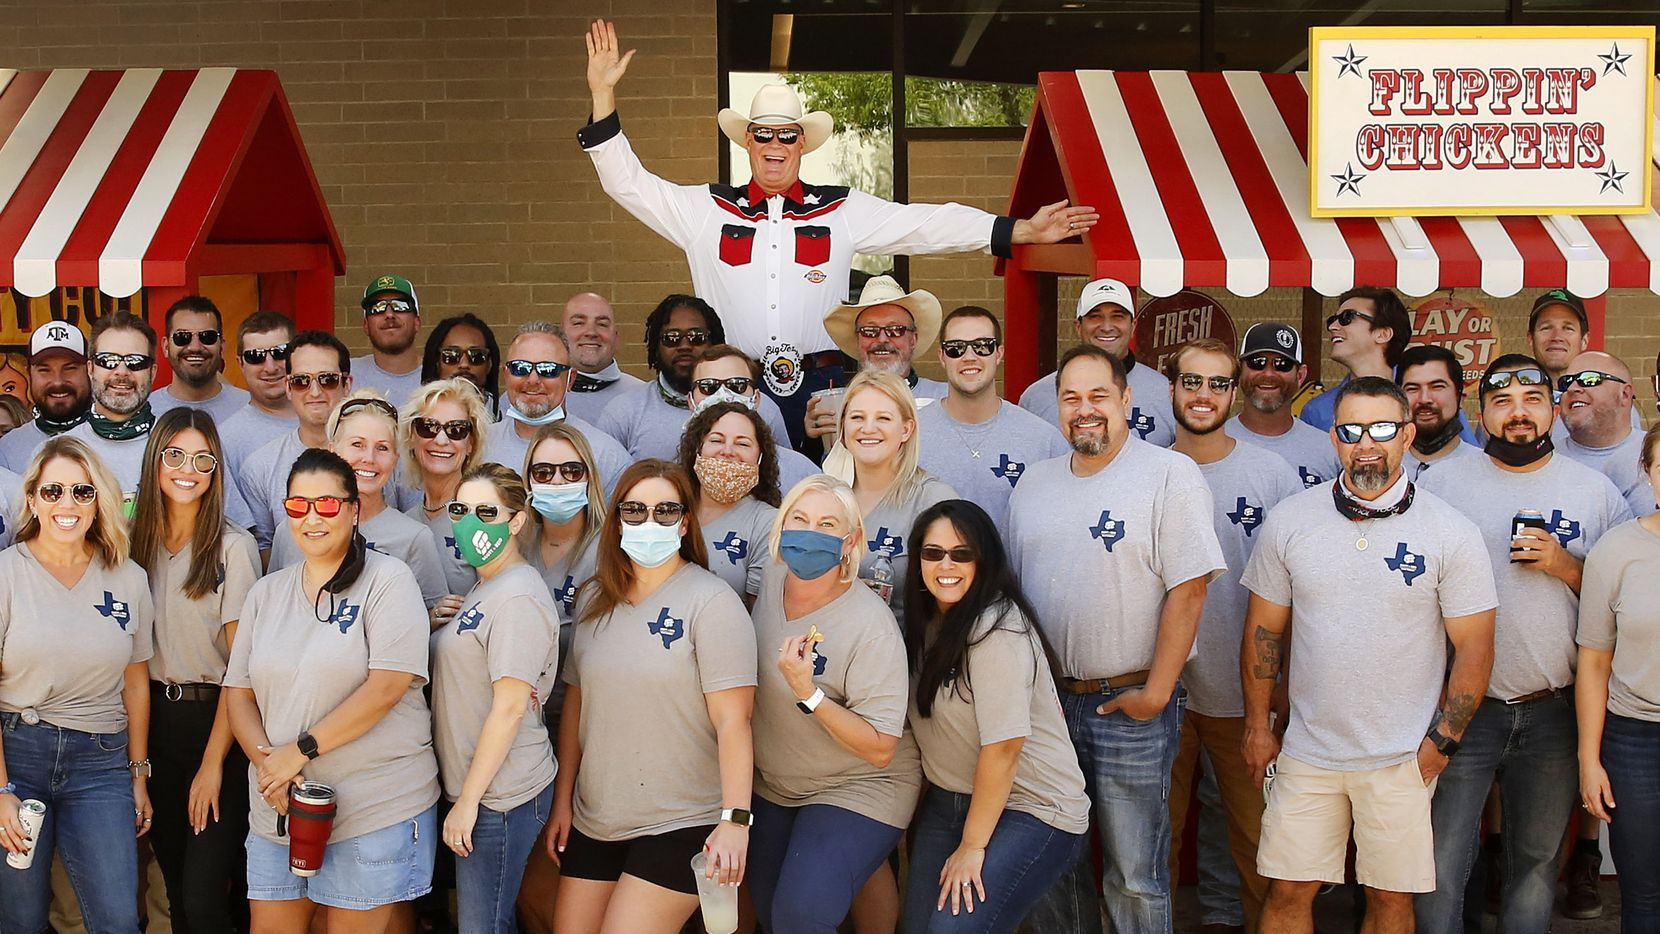 Dressed and posing as Big Tex, Scott + Reid General Contractors founder and president Brad Reid (center) joined his employees for a photo during the company's (Un)Fair Day in Addison on Sept. 25. Usually on opening day of the State Fair of Texas, the employees get the day off to spend at the fair. Instead they brought a fair to their company parking lot.